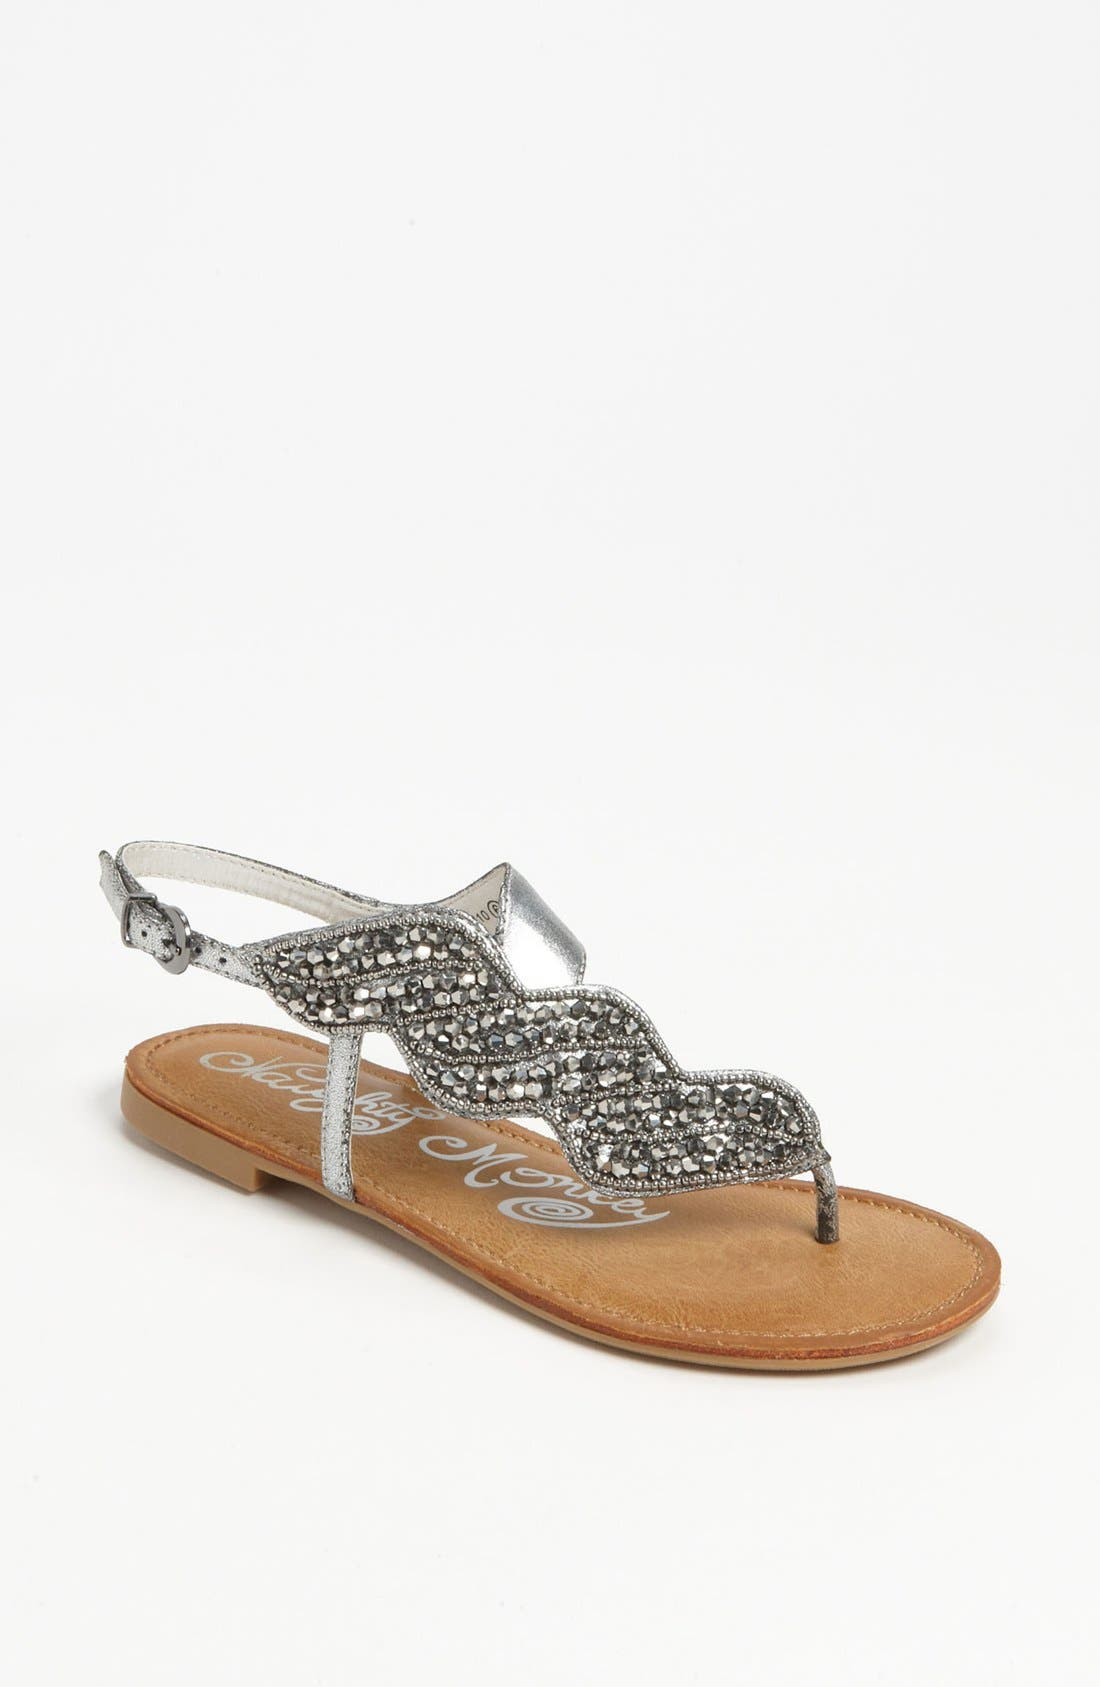 Main Image - Naughty Monkey 'Illusion' Sandal